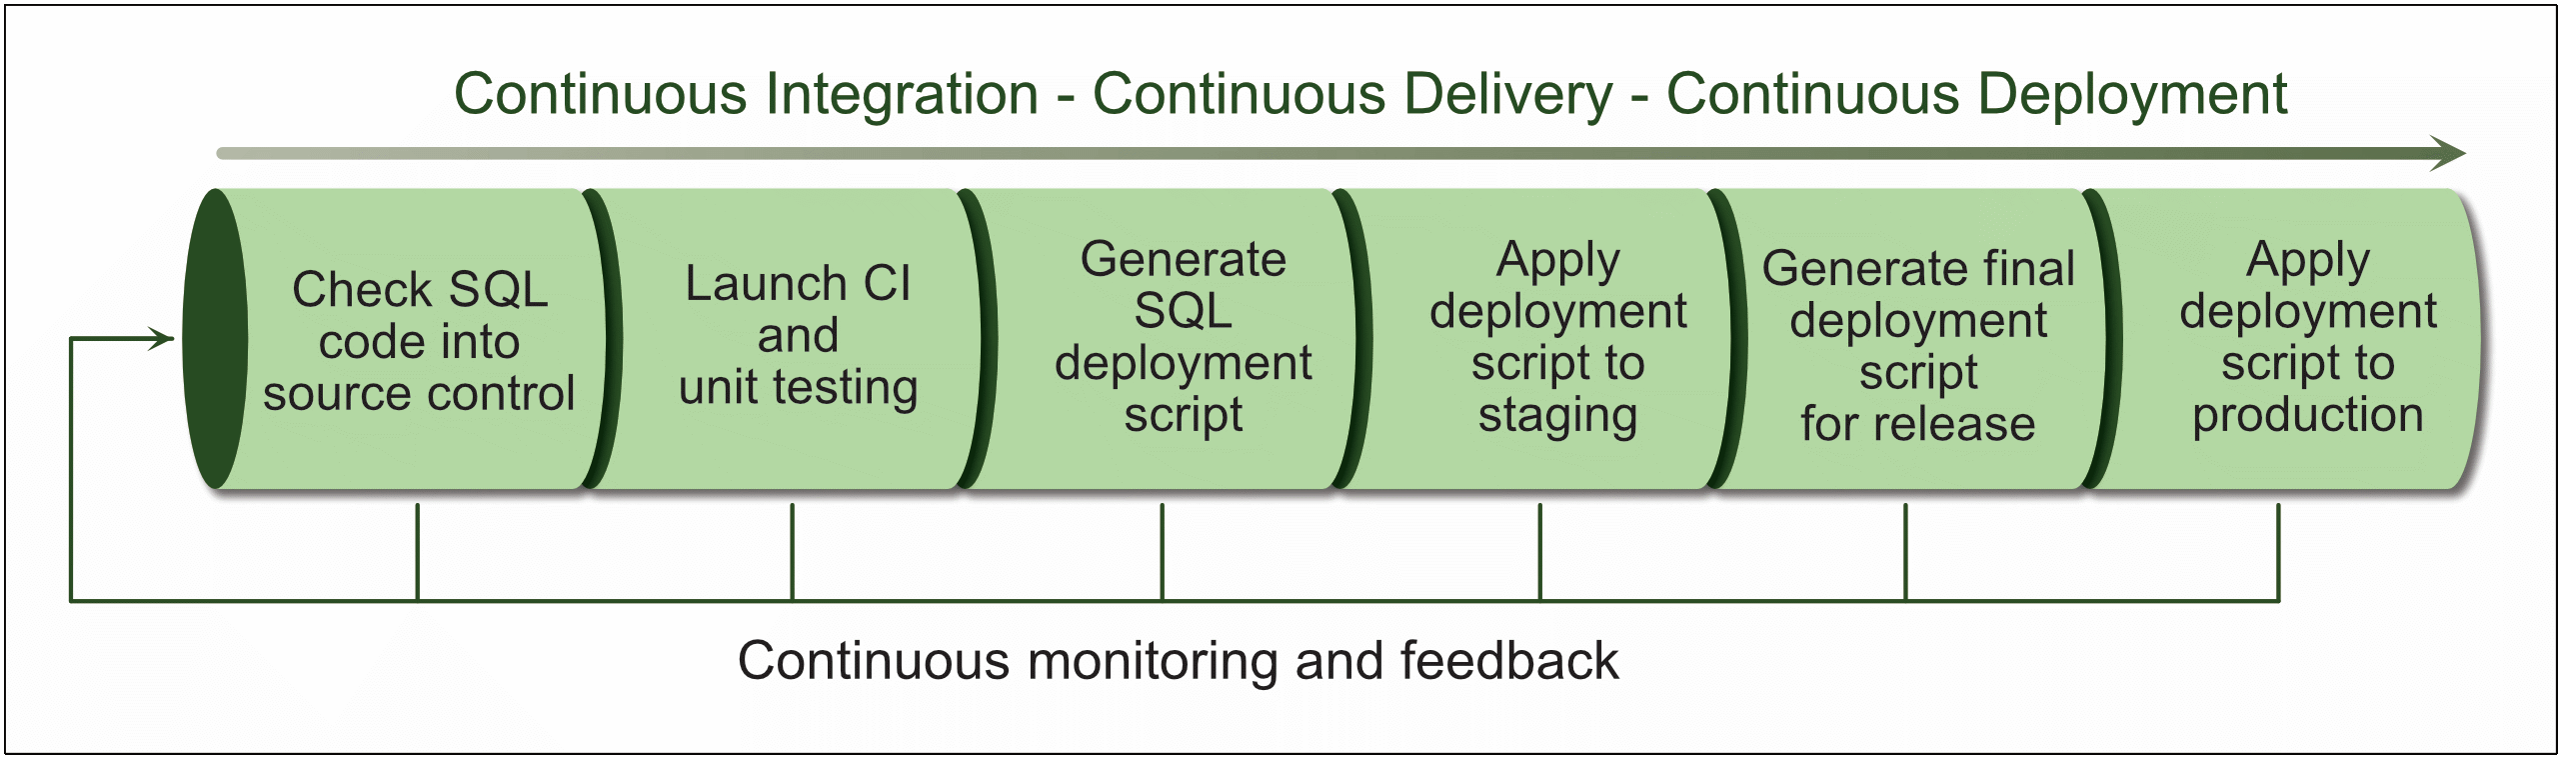 word image 41 Introduction to DevOps: DevOps and the Database